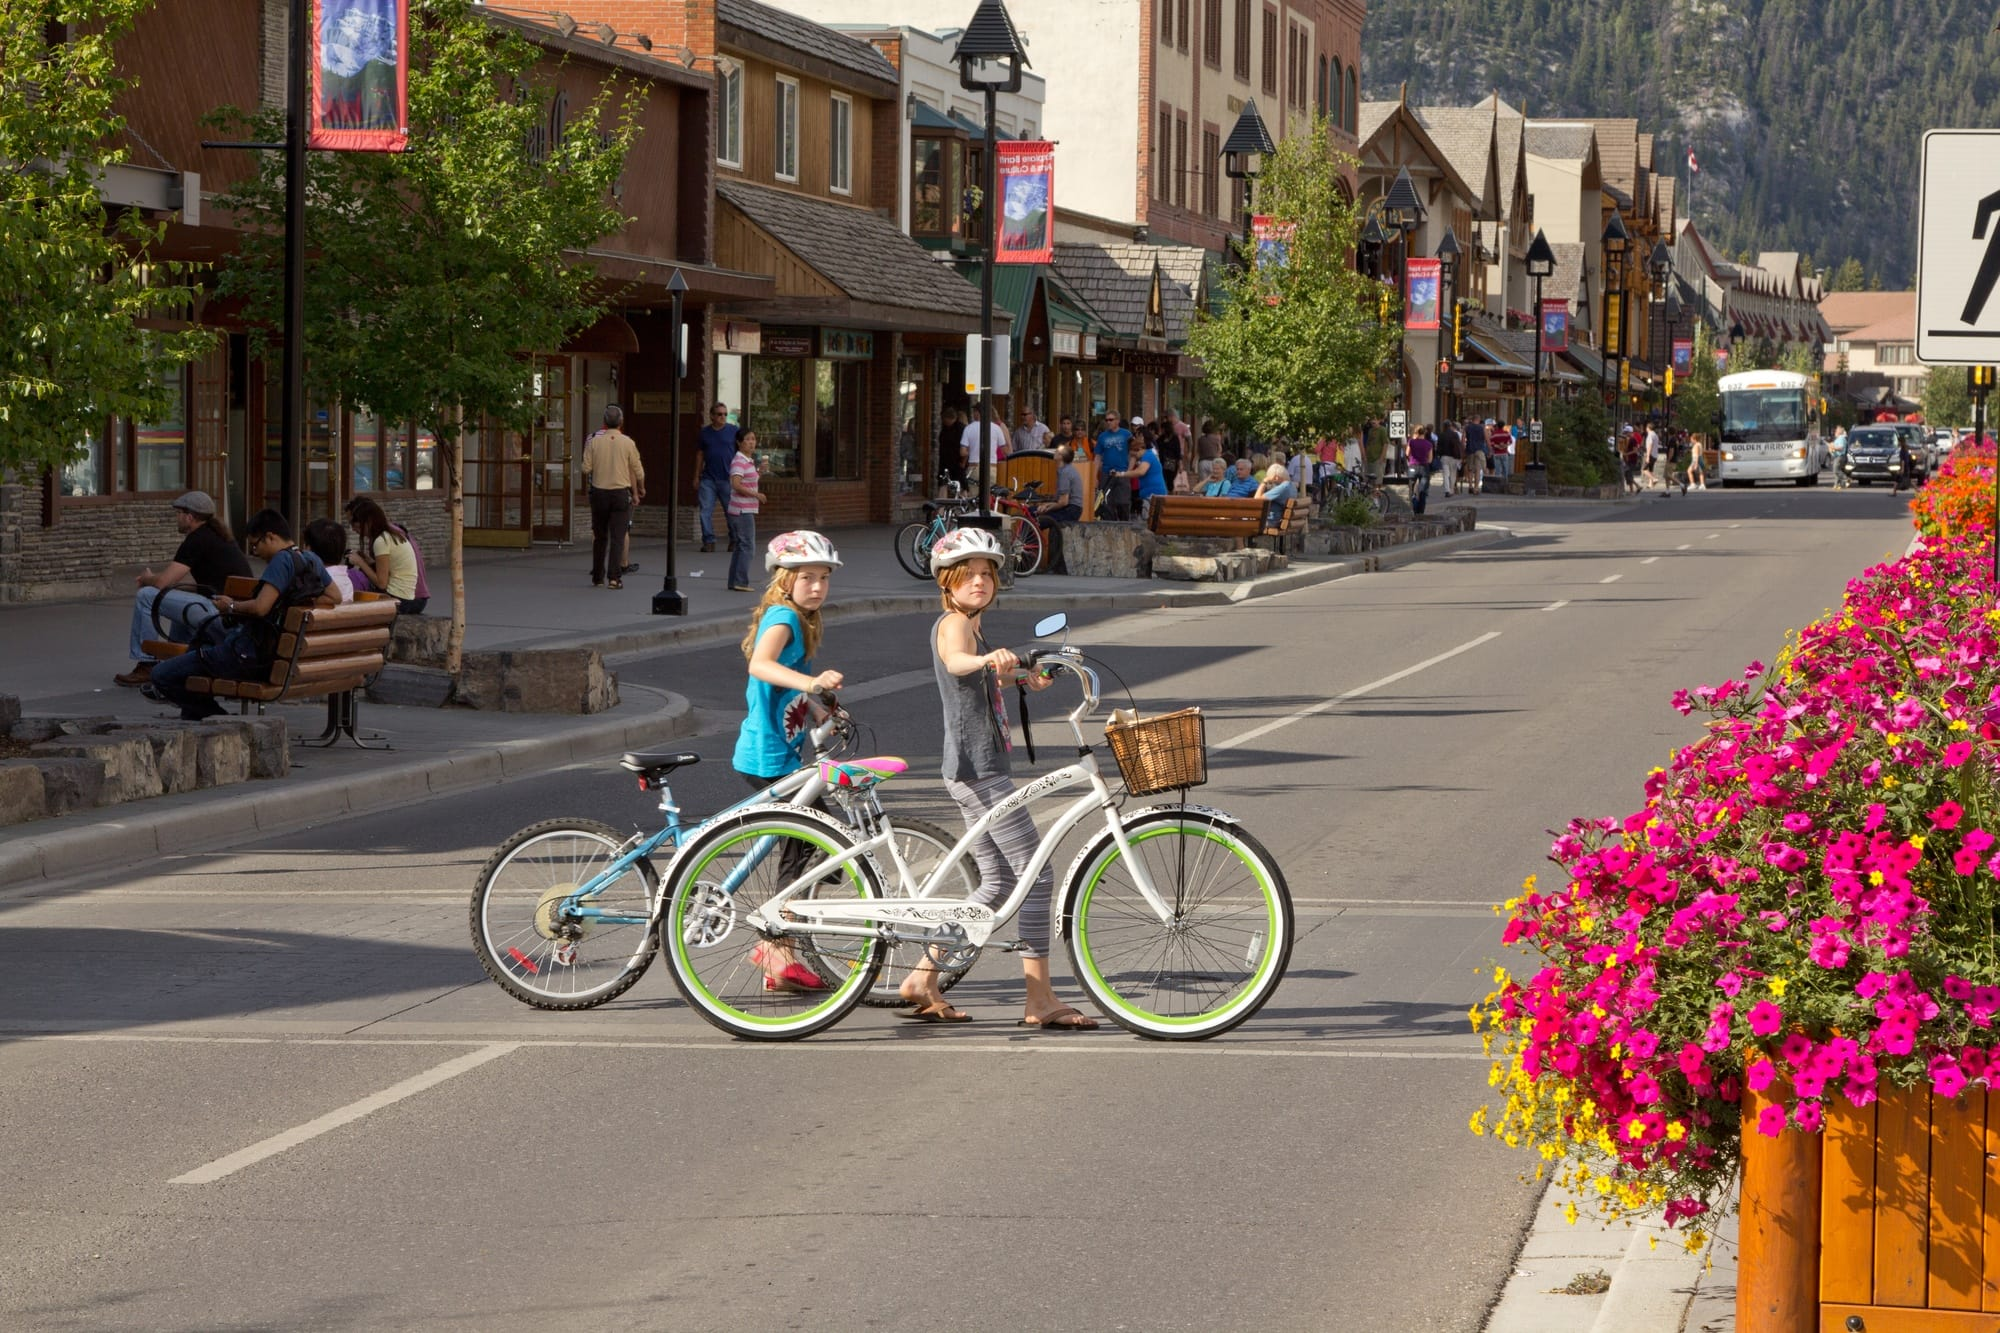 Explore Banff with kids in summer by bike